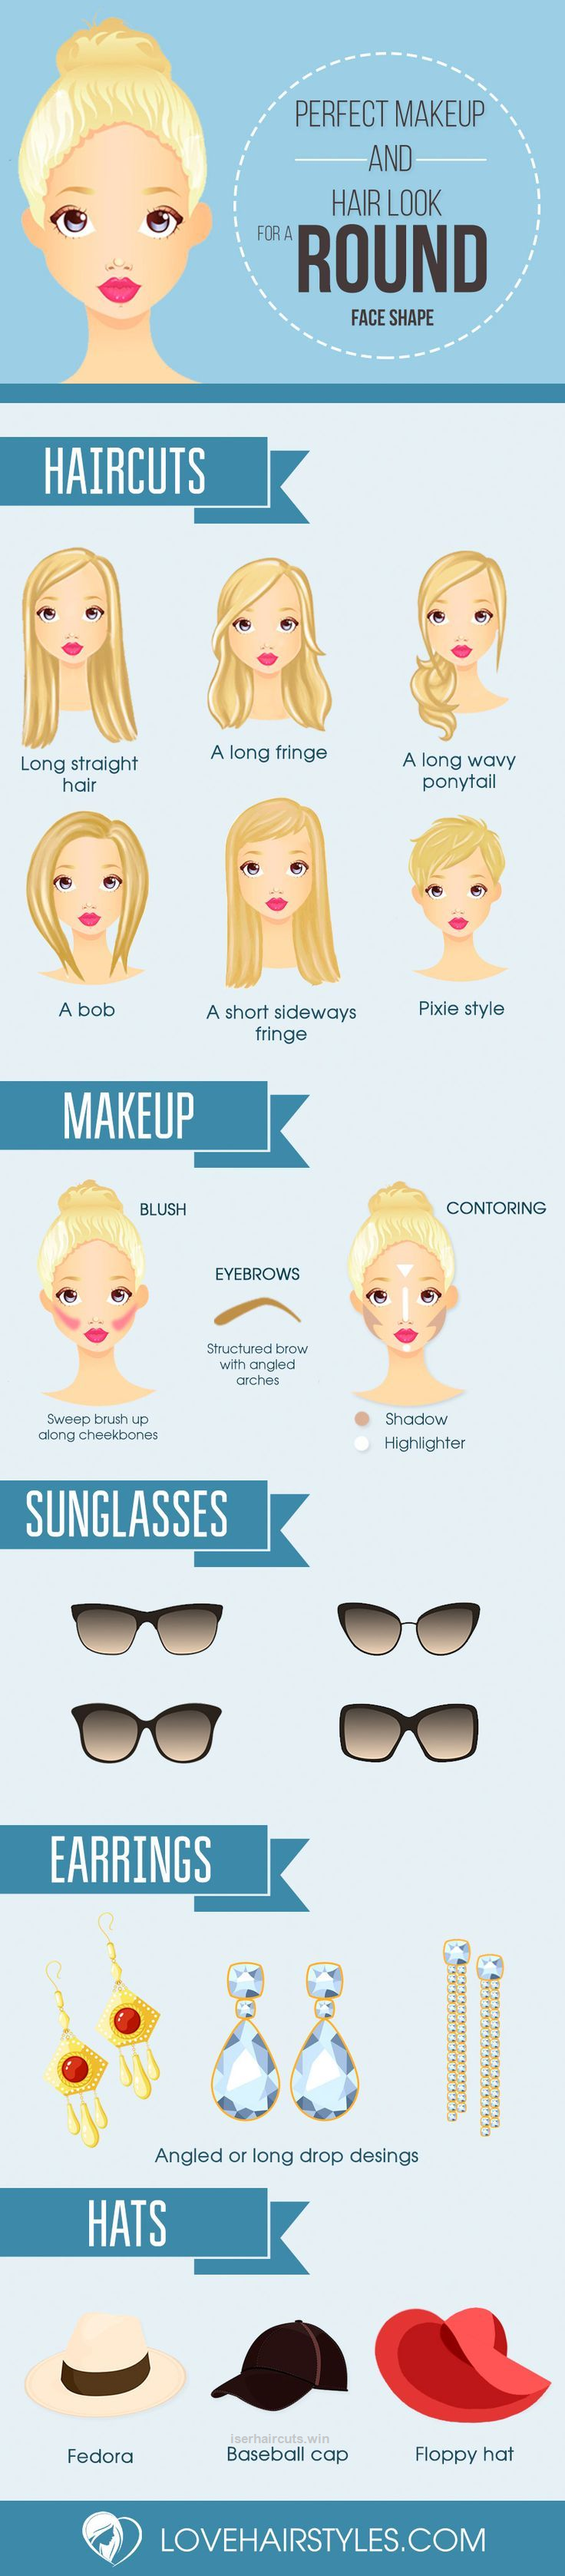 Try These Best Hairstyles And Makeup For Round Faces Round Face Makeup Round Face Haircuts Round Face Shape